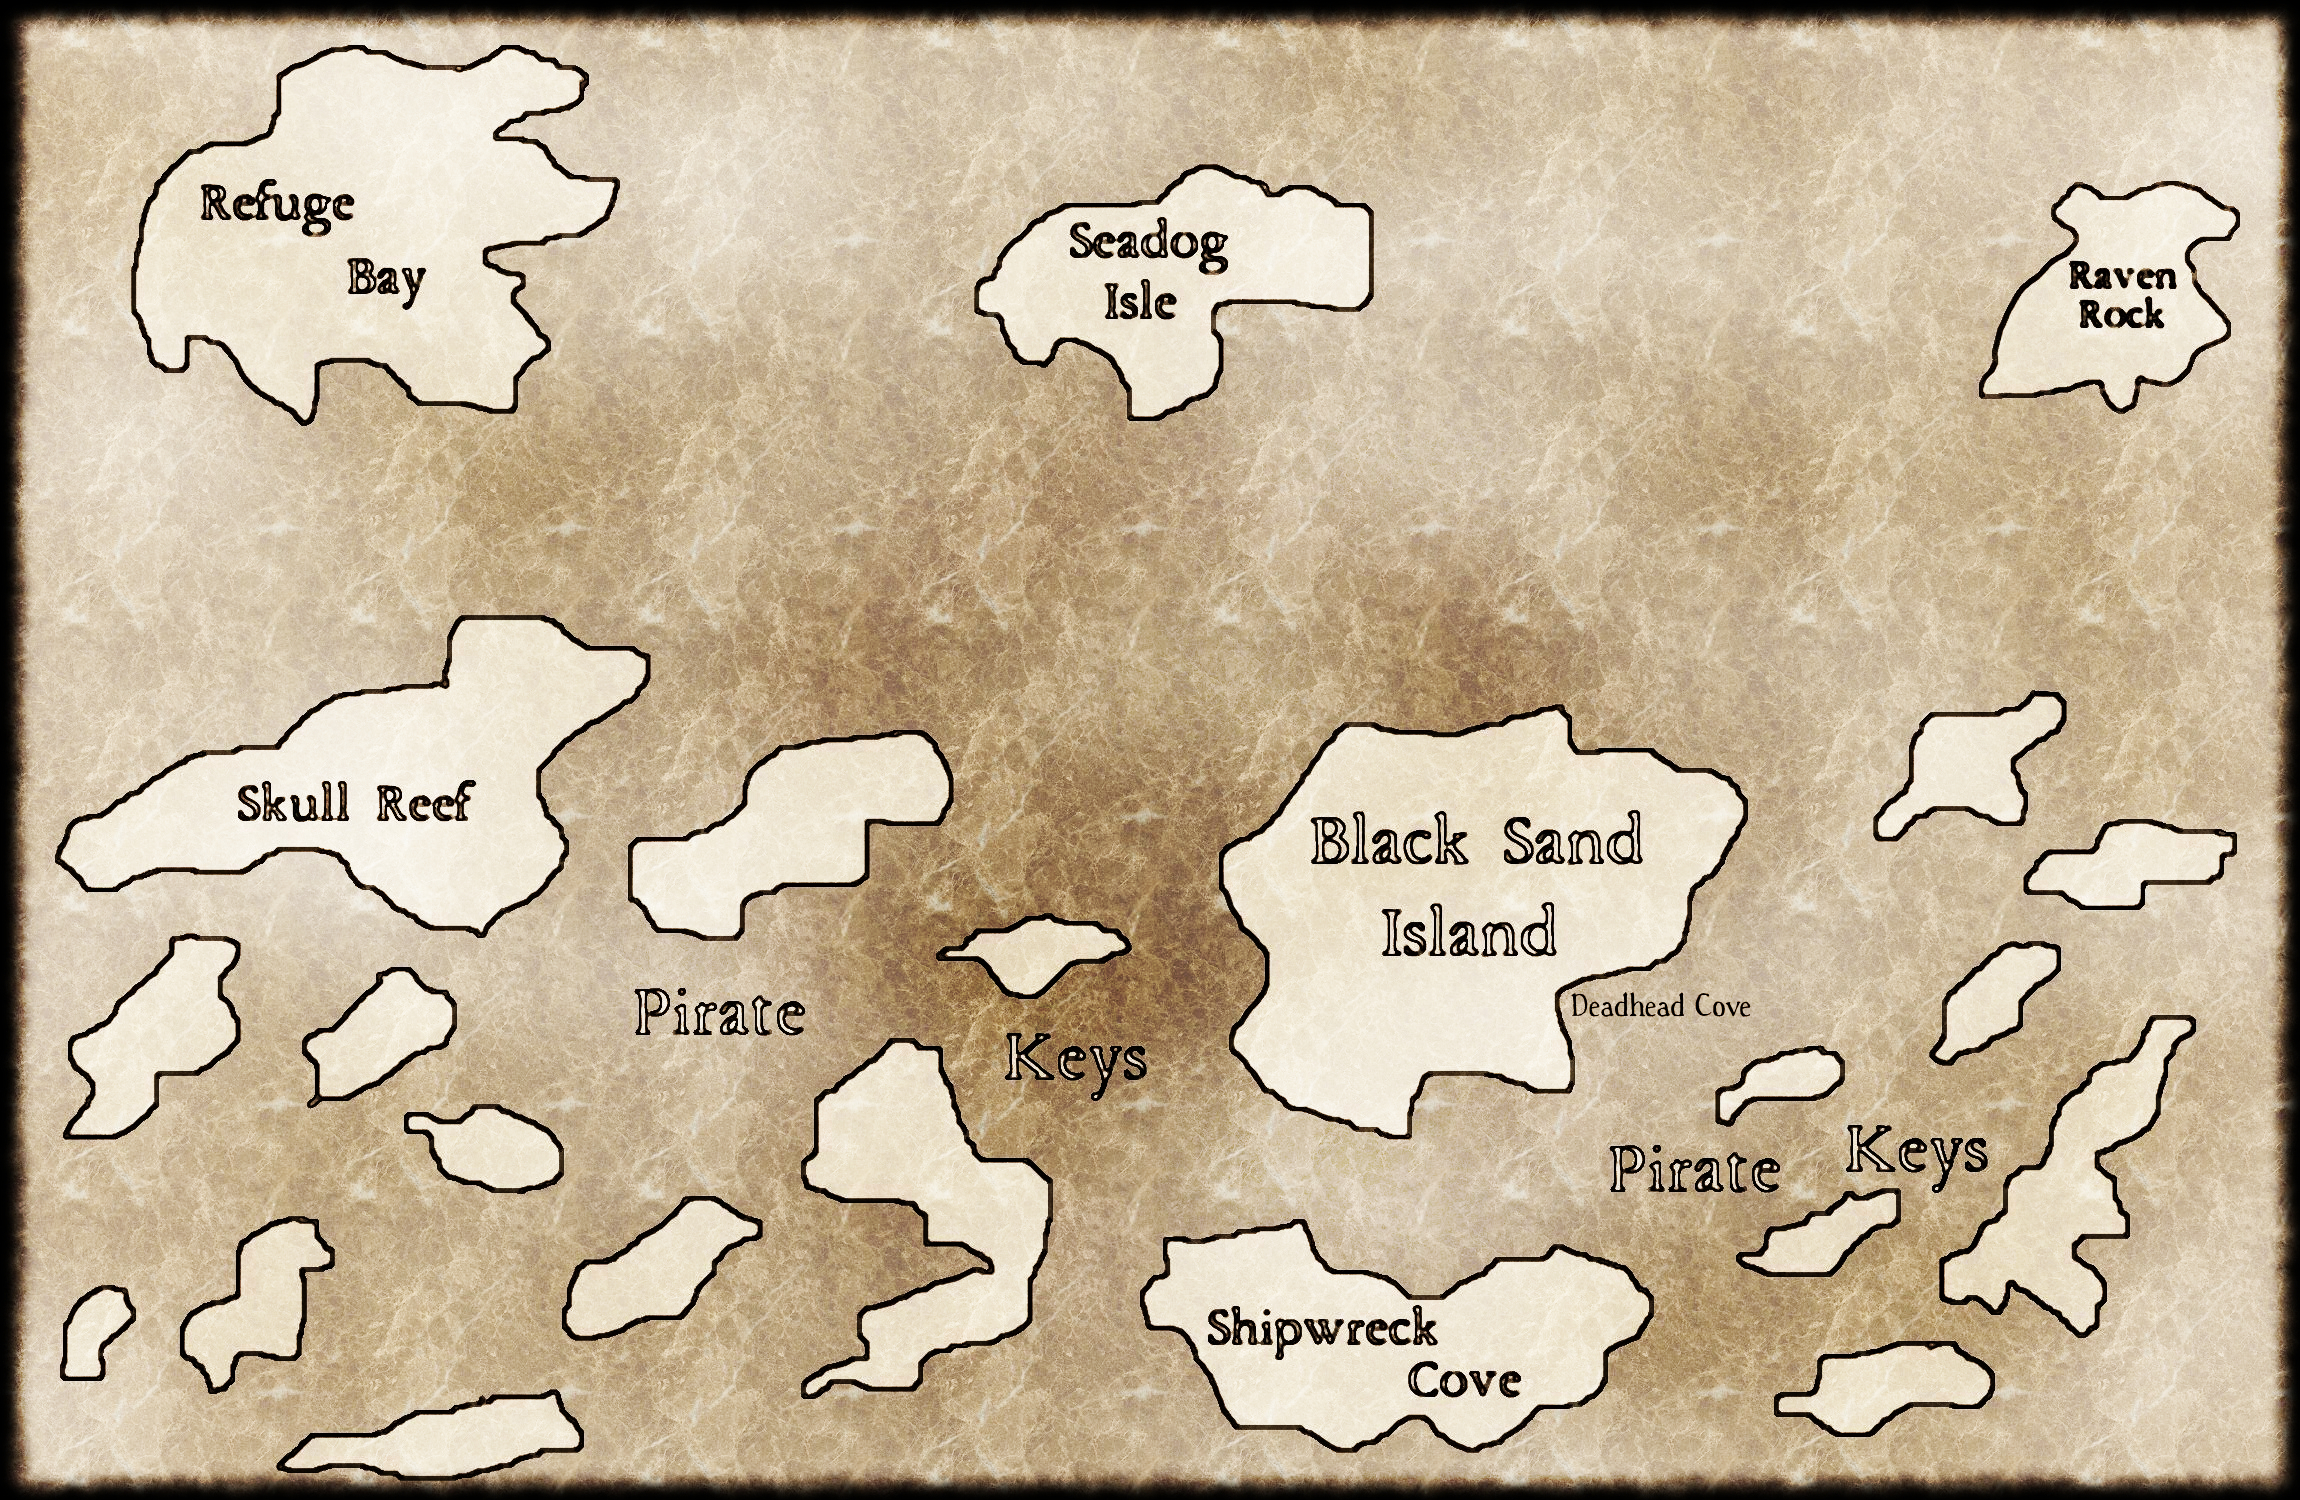 Pirate Keys Map